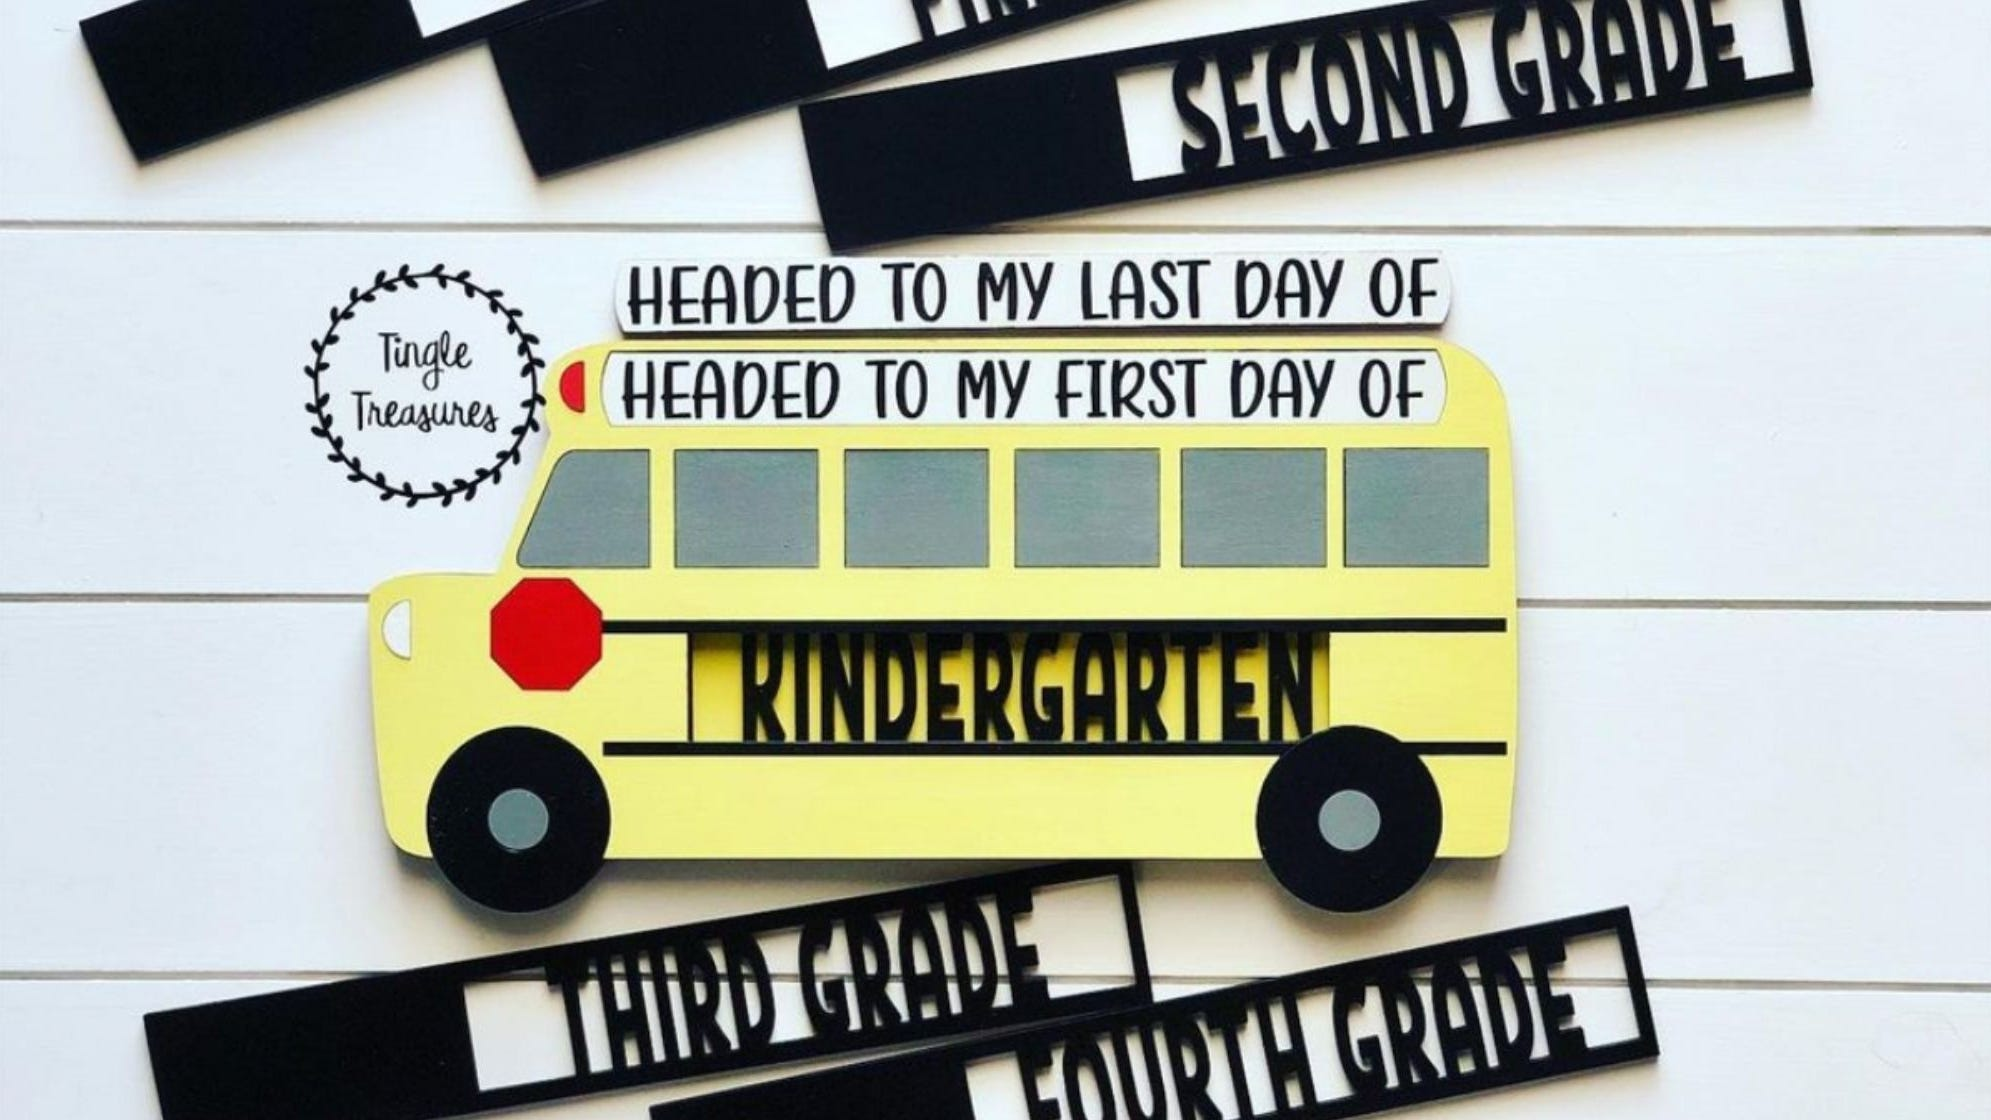 They'll be ready to roll into the first day of school with this school bus inspired sign.